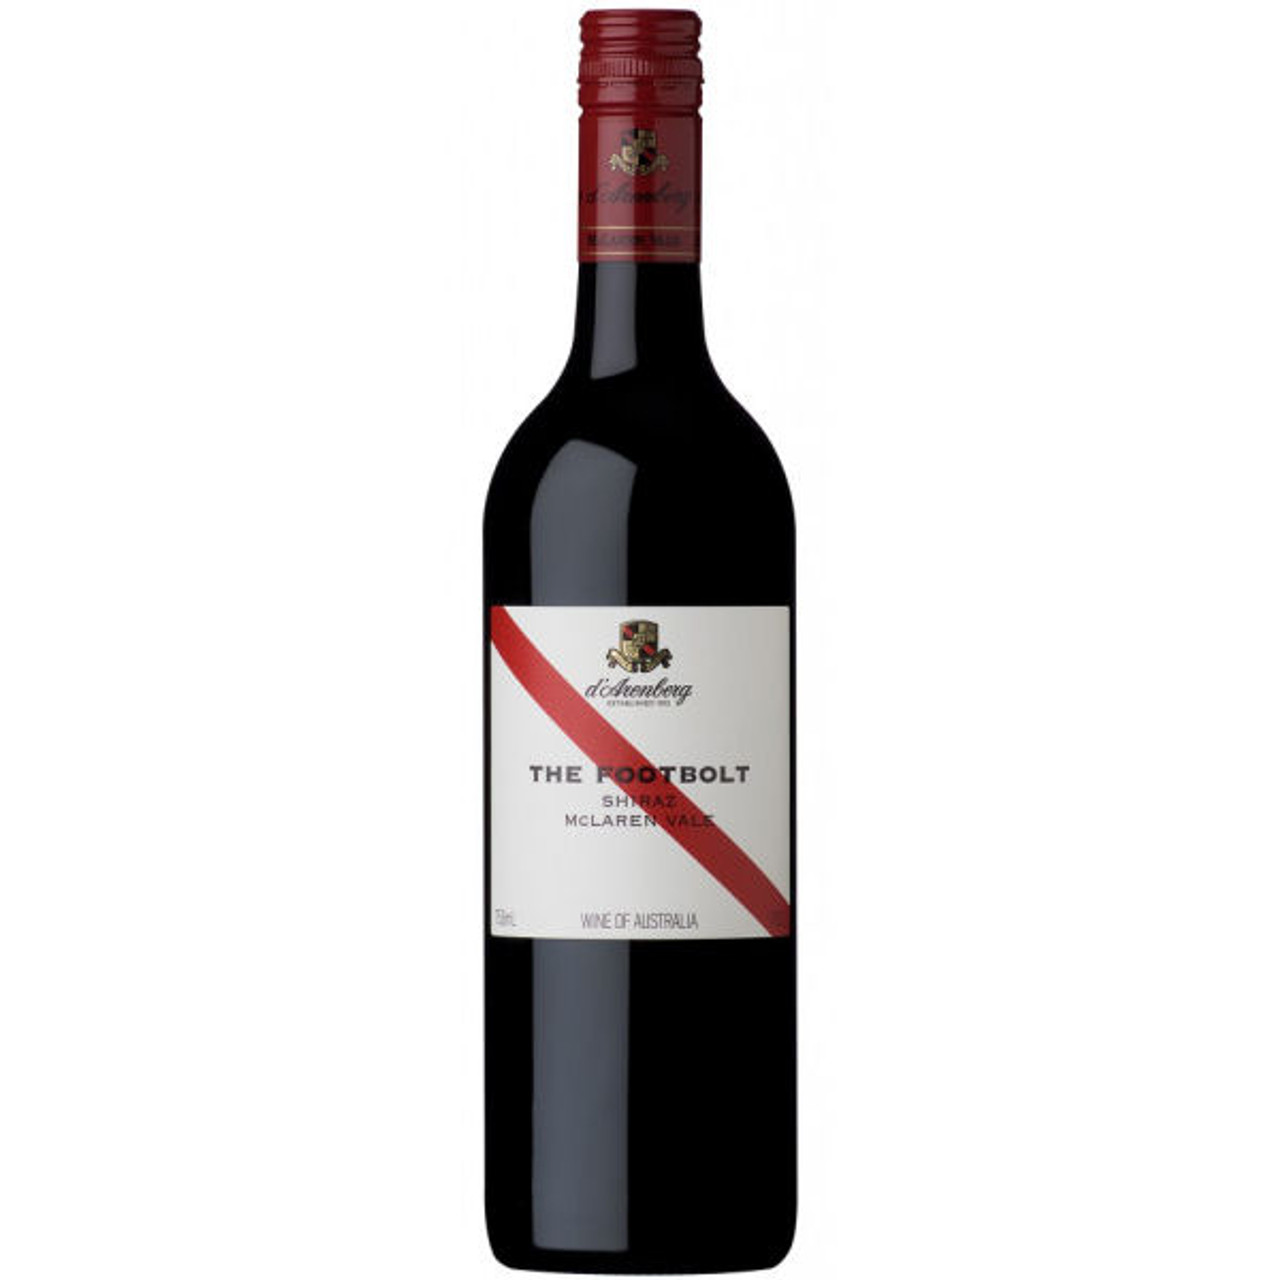 d'Arenberg McLaren Vale The Footbolt Shiraz 2013 Rated 91WE EDITORS CHOICE